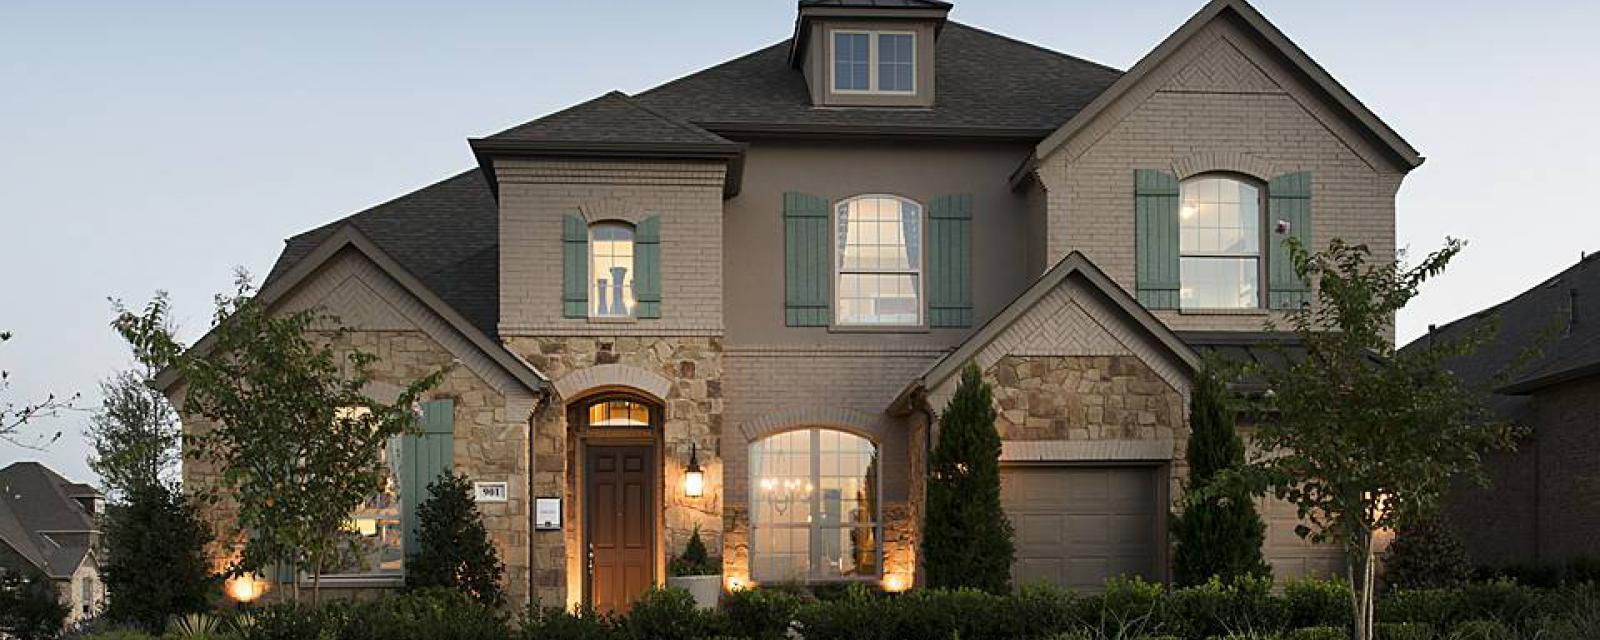 Single Family for Sale at Costello 7709 San Jacinto Trail McKinney, Texas 75071 United States